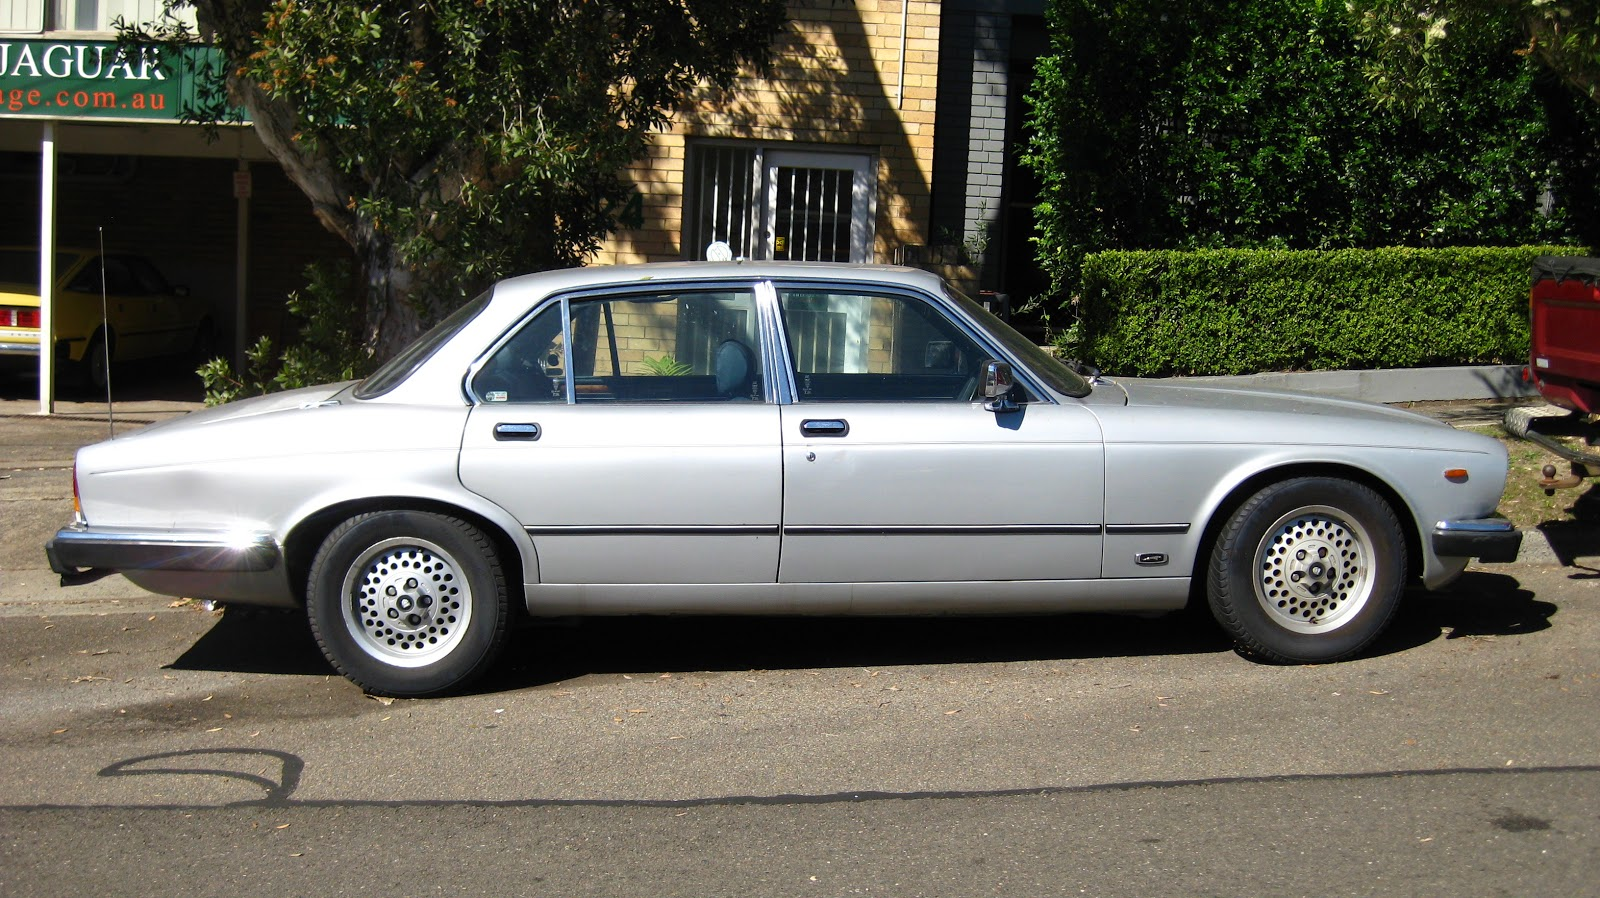 Aussie Old Parked Cars  1983 Jaguar Sovereign 4 2 XJ6 4 2